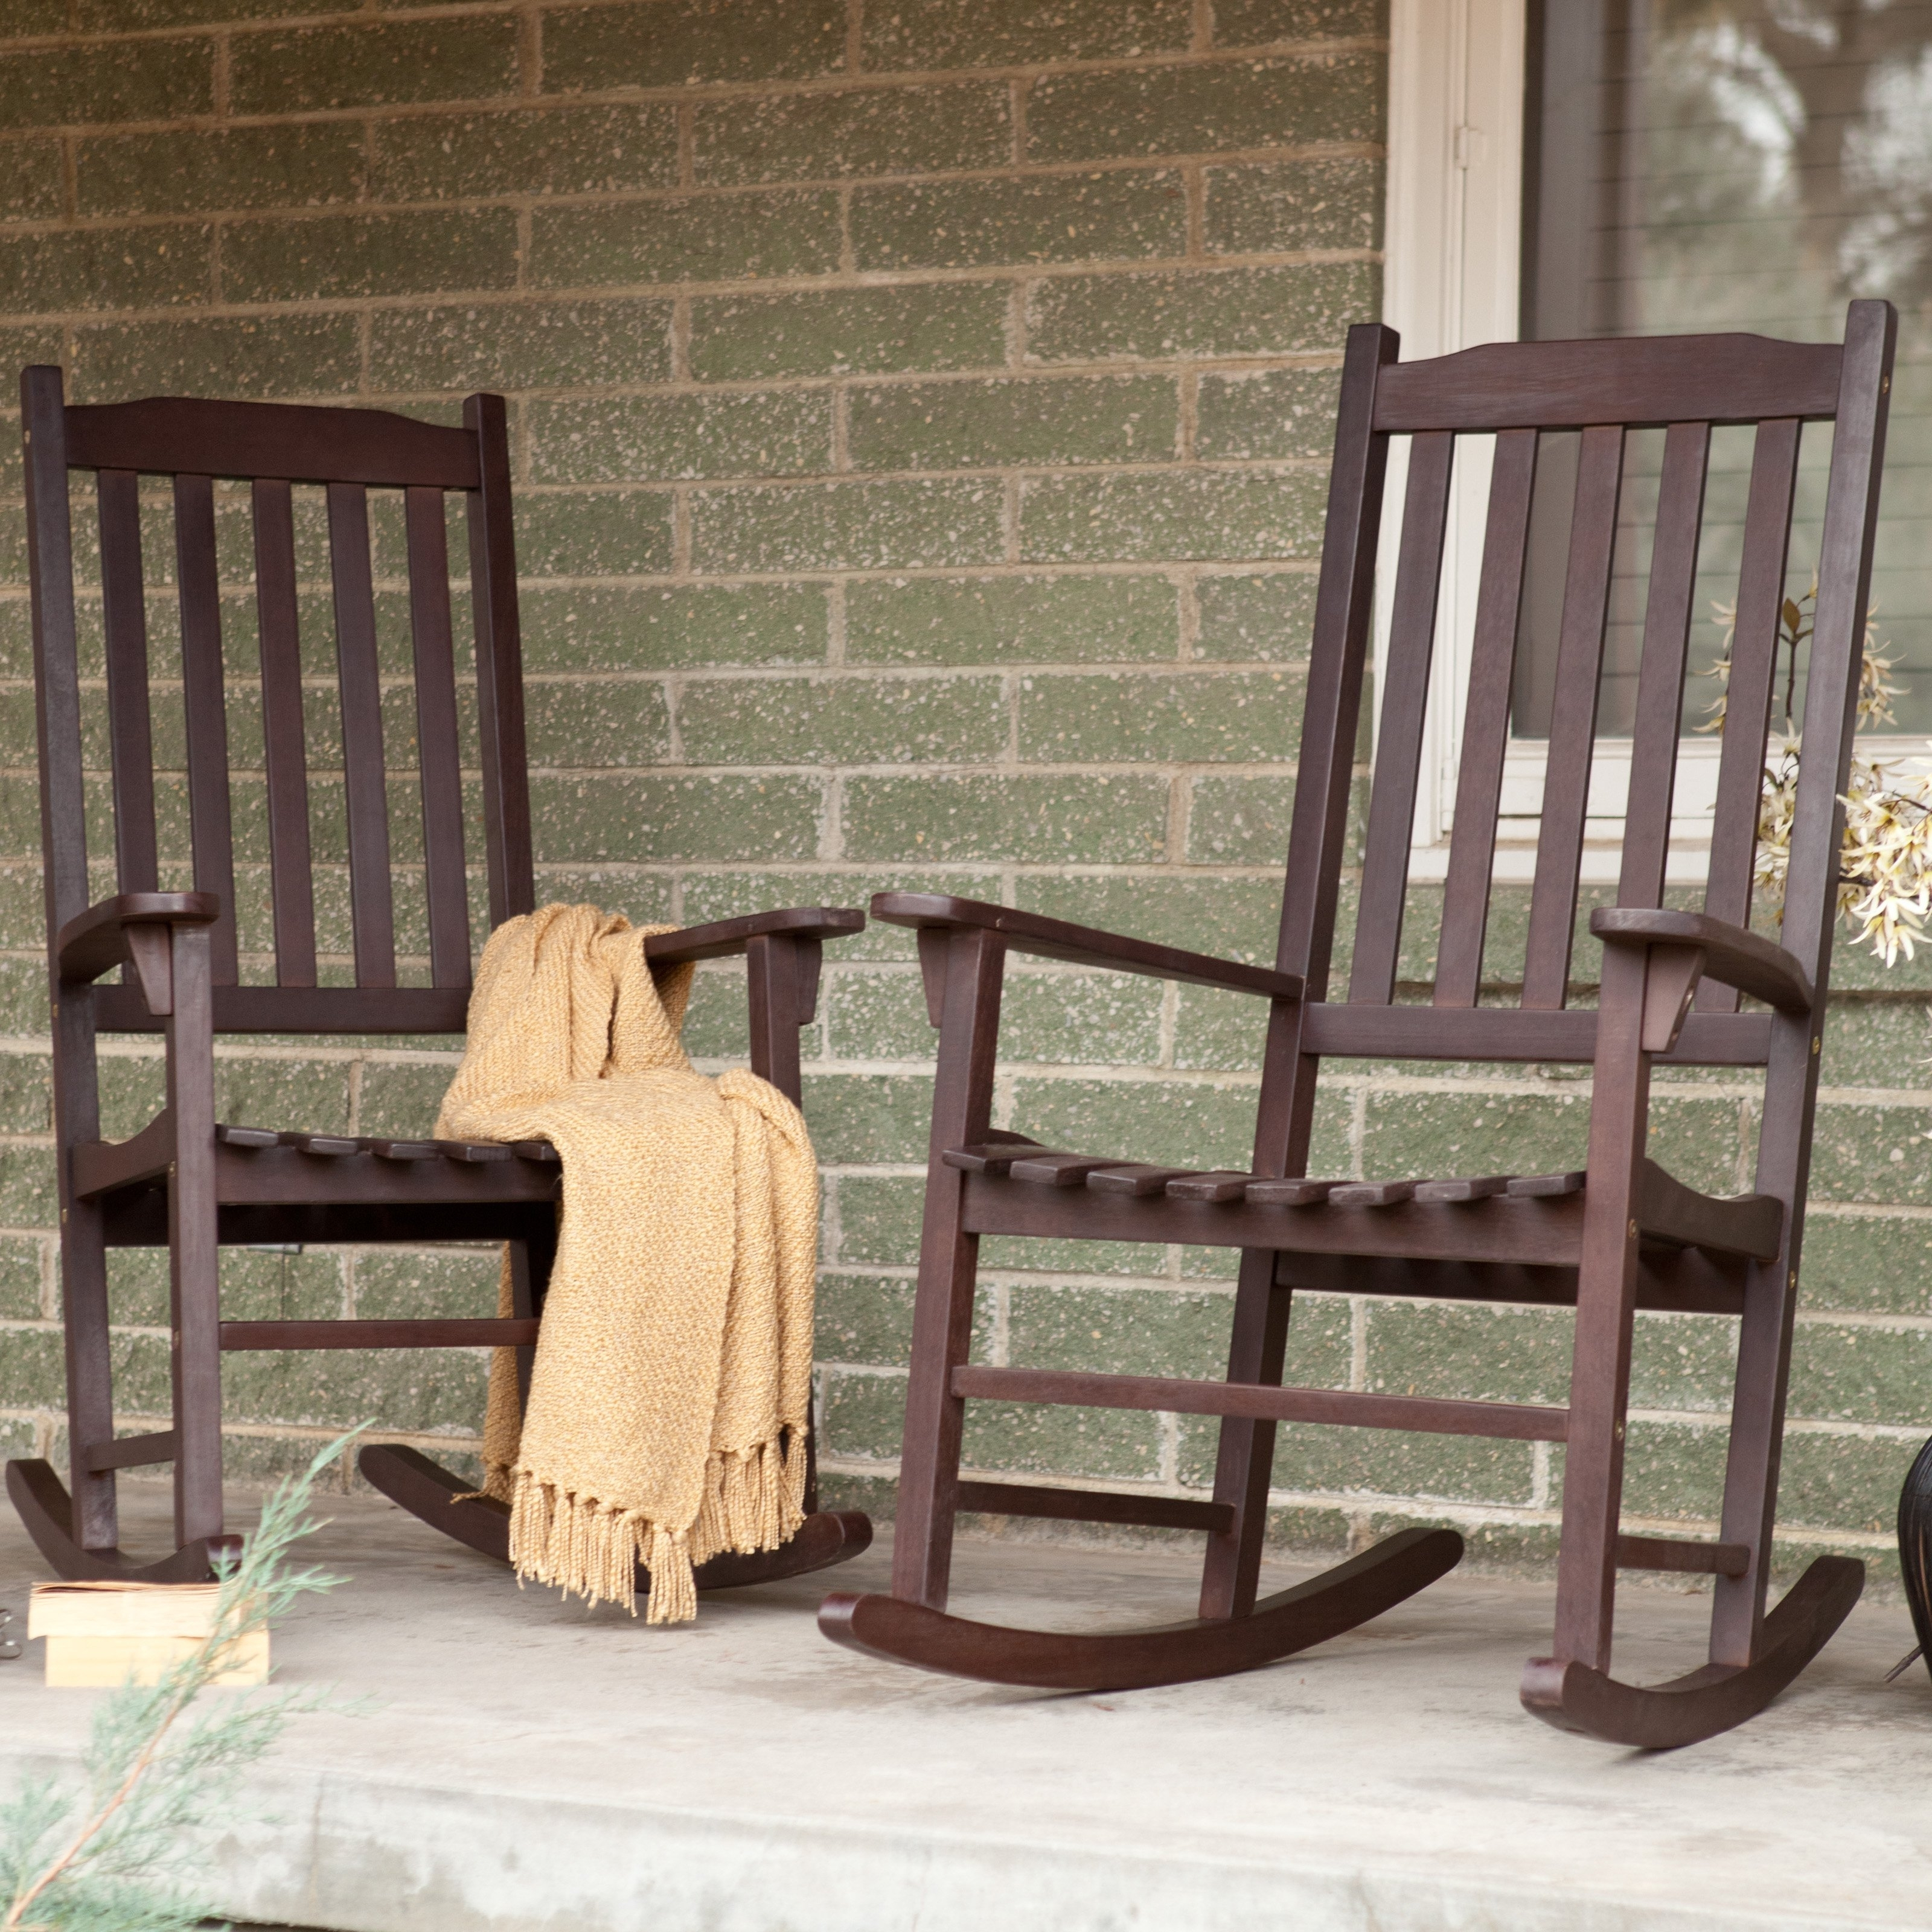 How To Choose Comfortable Outdoor Rocking Chairs – Yonohomedesign For Outdoor Patio Rocking Chairs (View 5 of 15)